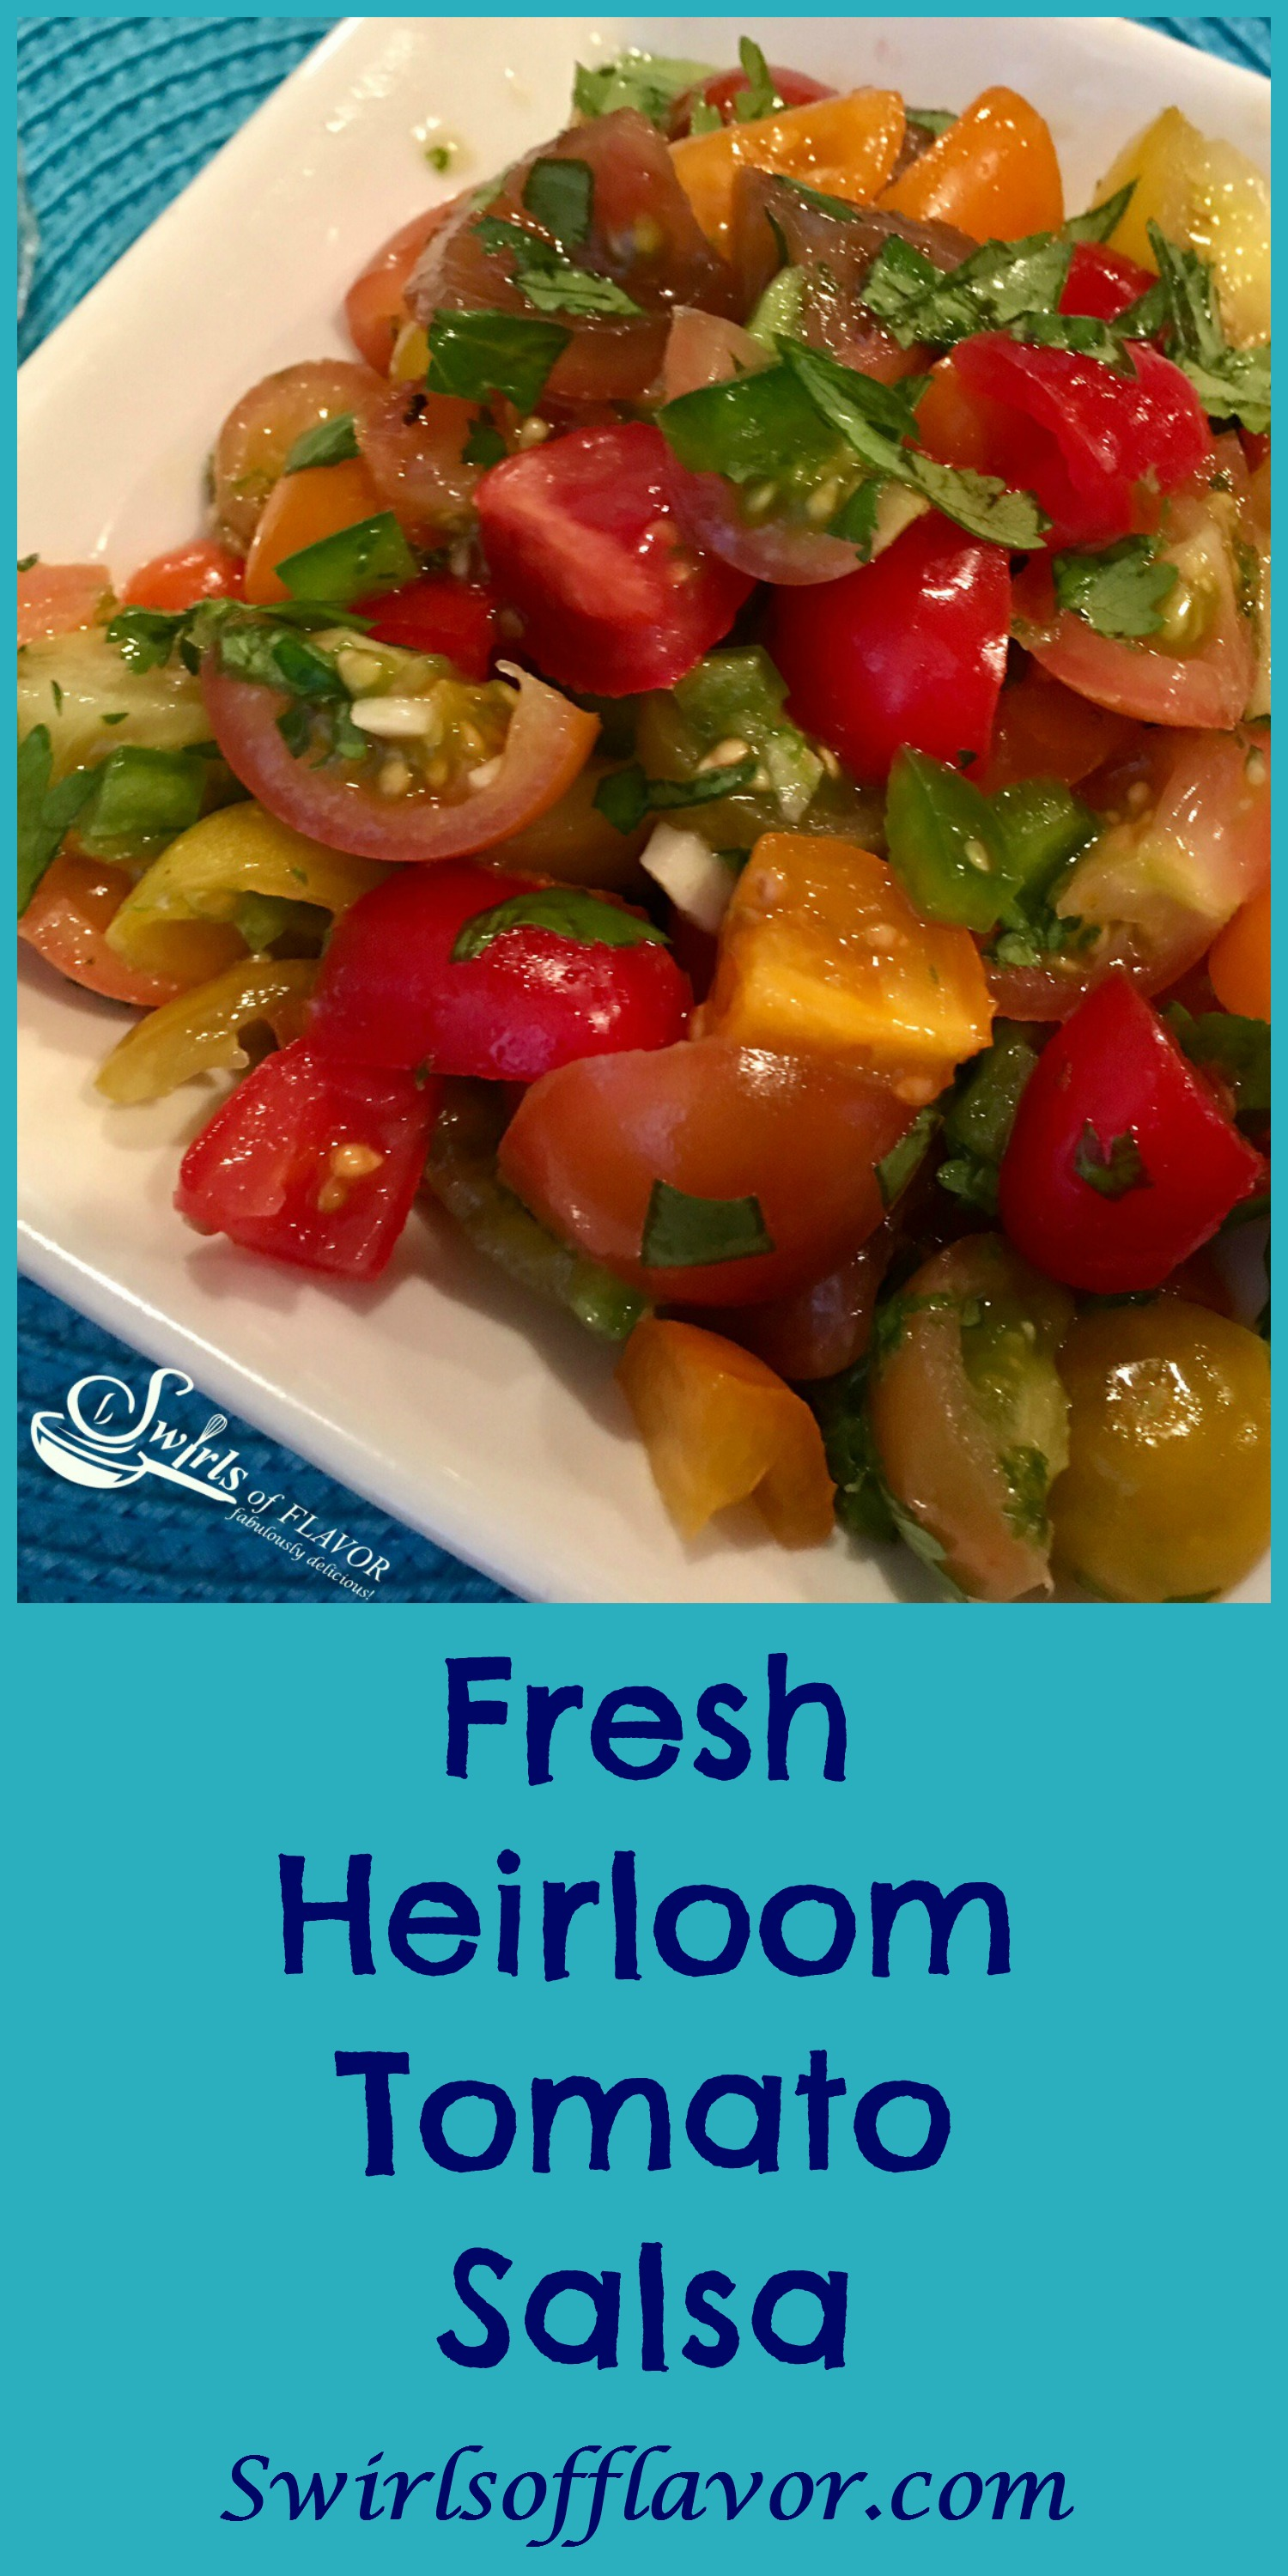 Fresh Heirloom Tomato Salsa is an easy homemade salsa recipe bursting with fresh summertime flavors and perfect with tortilla chips or tacos and over chicken, beef or fish! salsa | fresh salsa | heirloom tomatoes | tomatoes | jalapeno | cilantro | limes | snack | appetizer | tacos | #swirlsofflavor